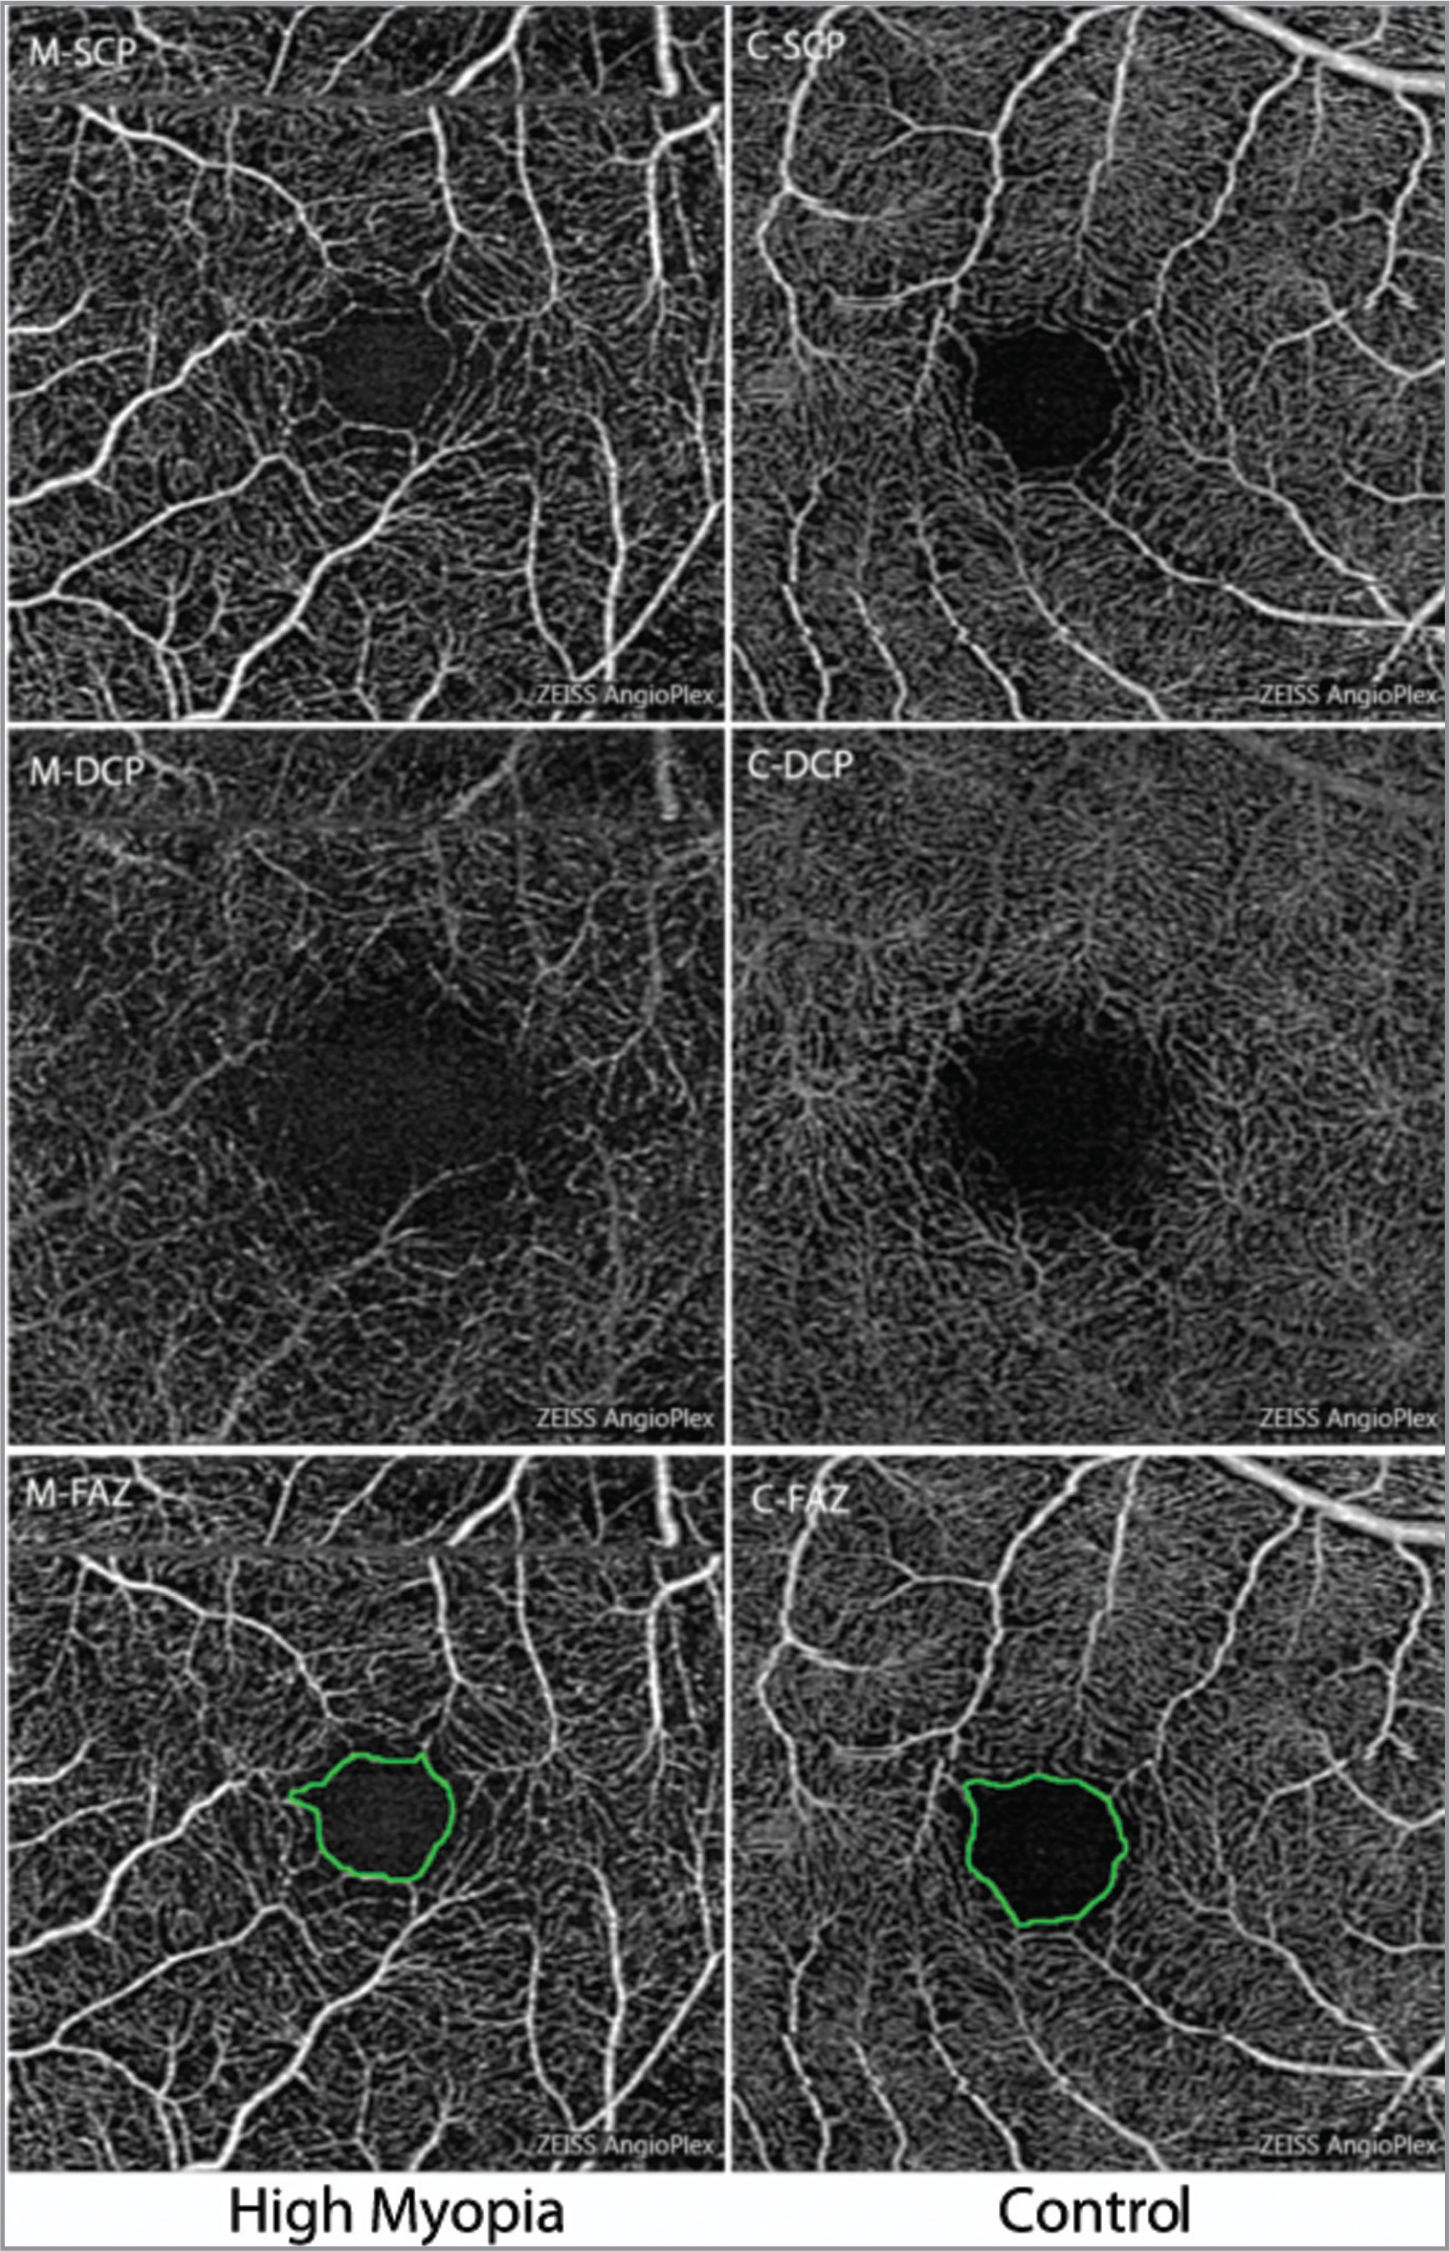 Optical coherence tomography angiography 3 × 3 mm2 scans segmented at the superficial capillary plexus (SCP) (top) and the deep capillary plexus (DCP) (middle). Manual outlining (green) of the borders as foveal avascular zone at the superficial capillary plexus (bottom).